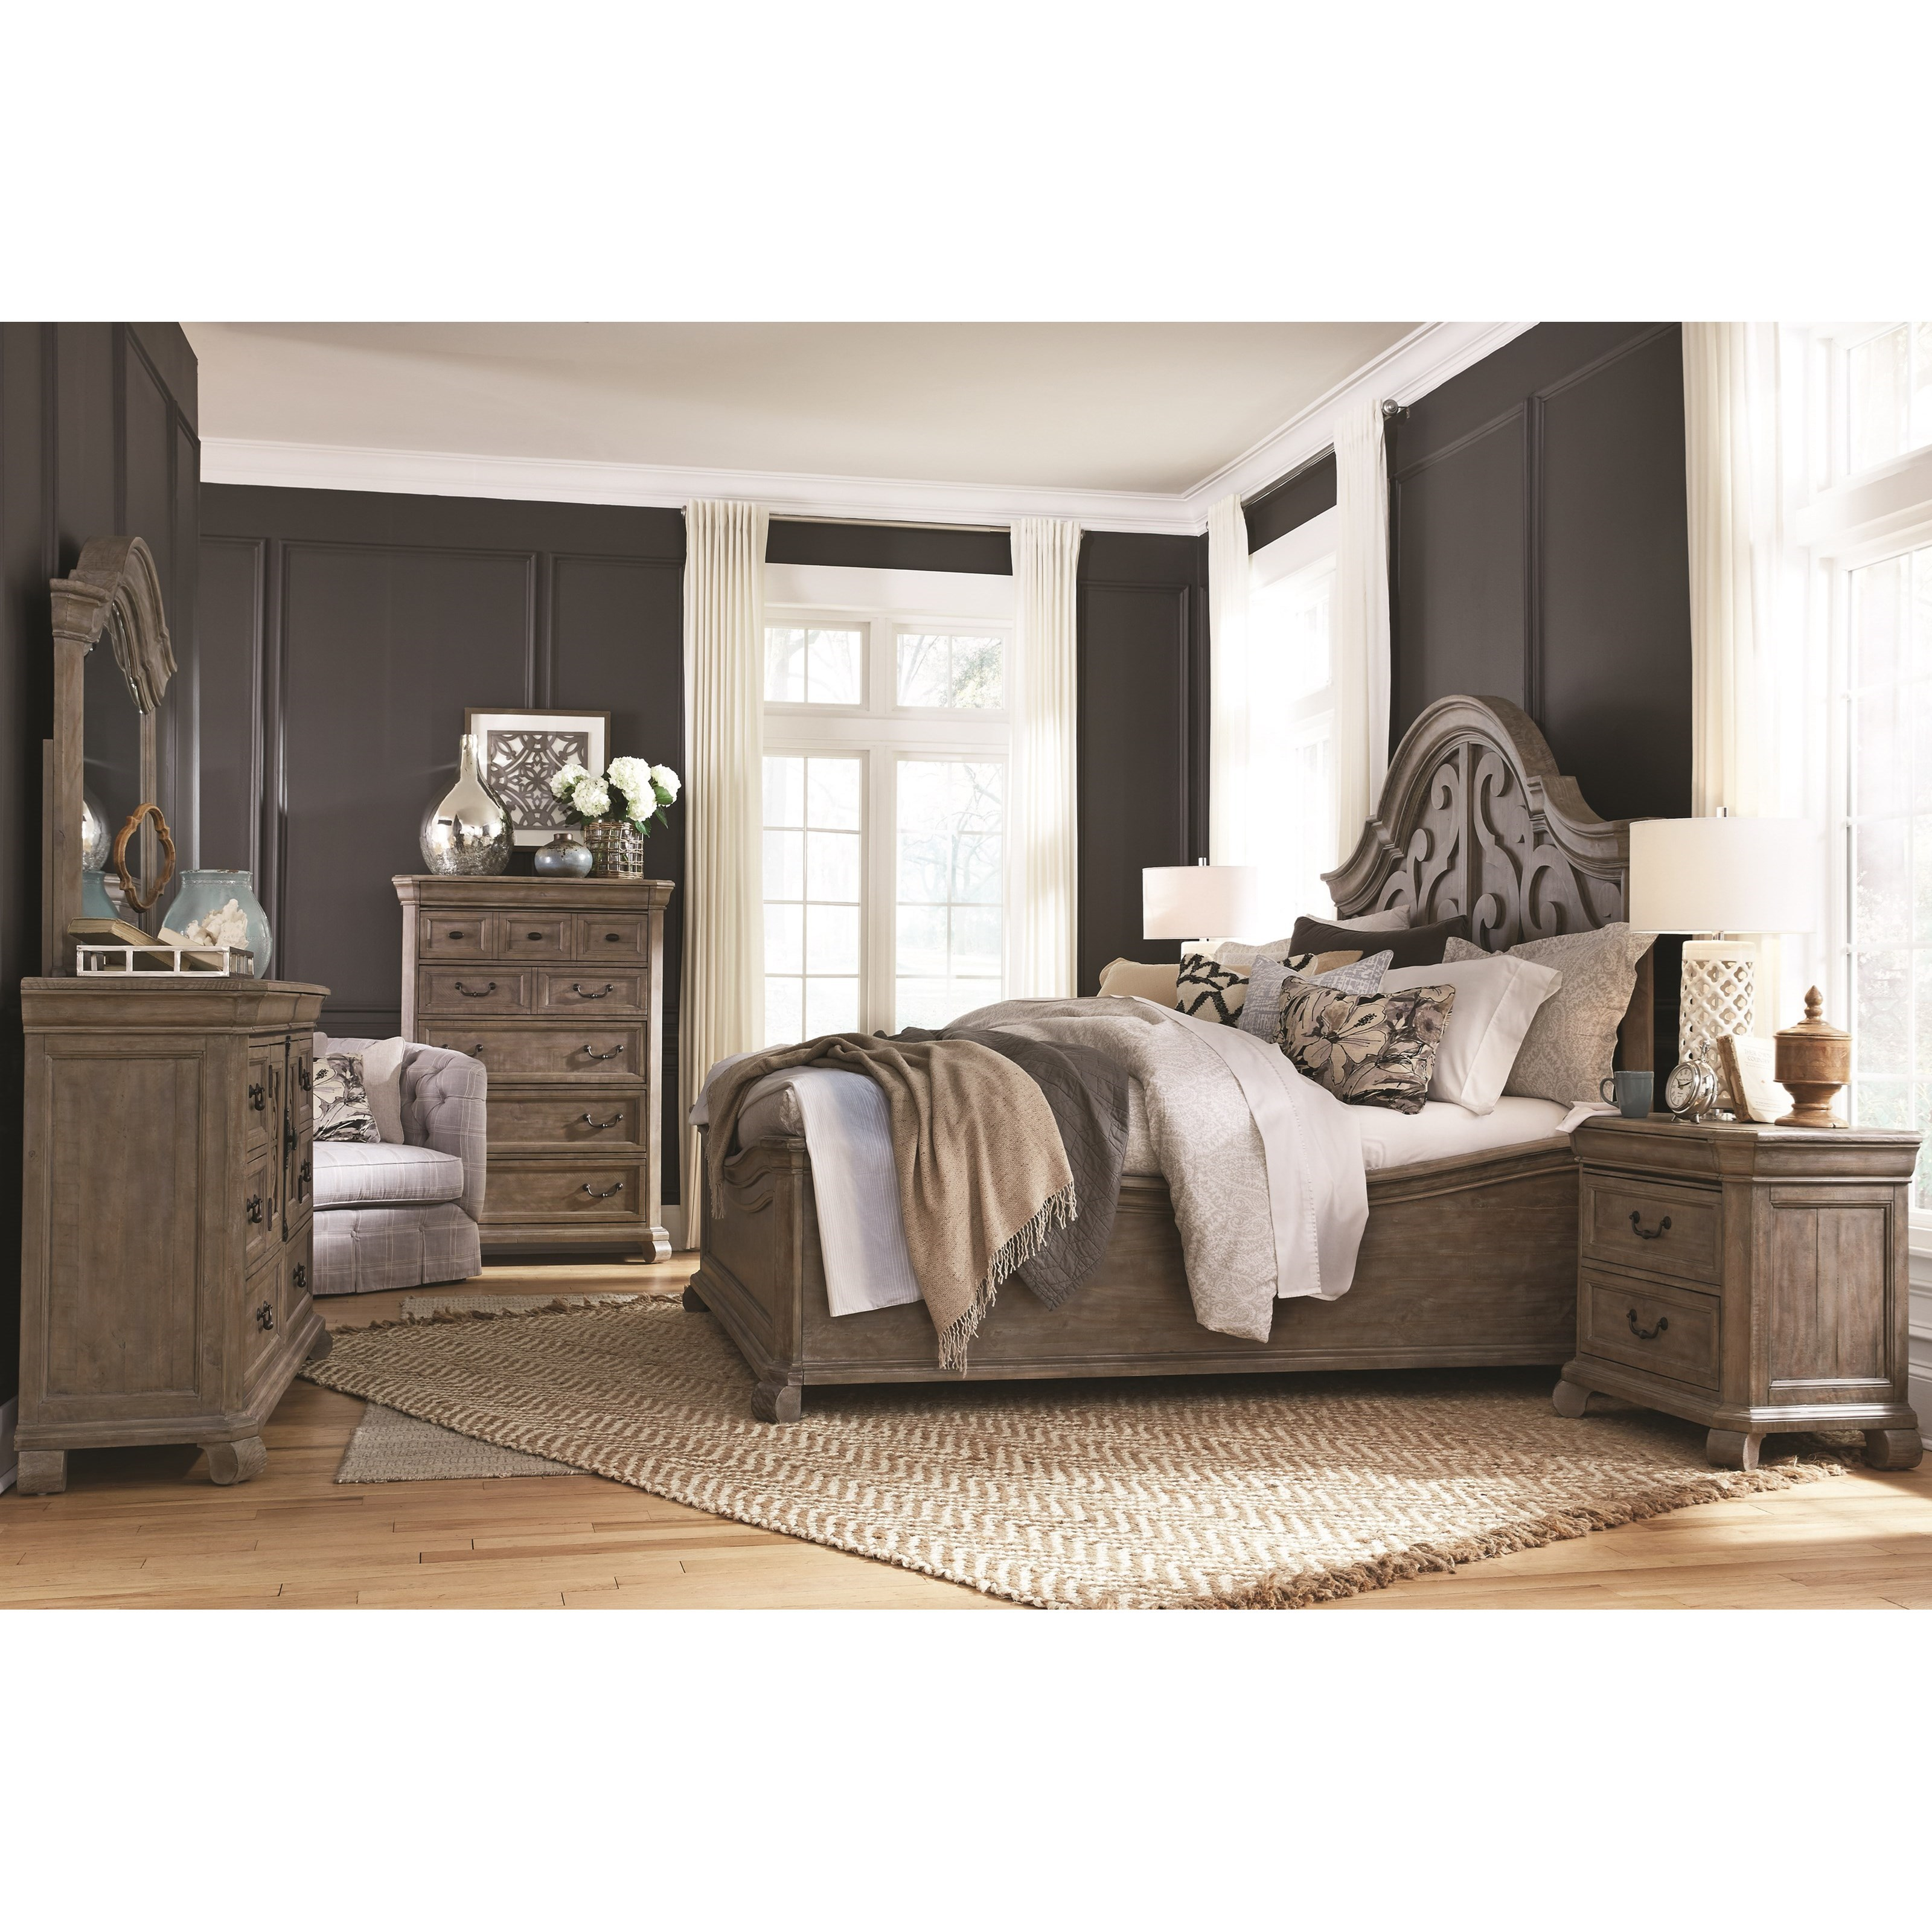 Tinley Park California King Bedroom Group by Magnussen Home at Mueller Furniture